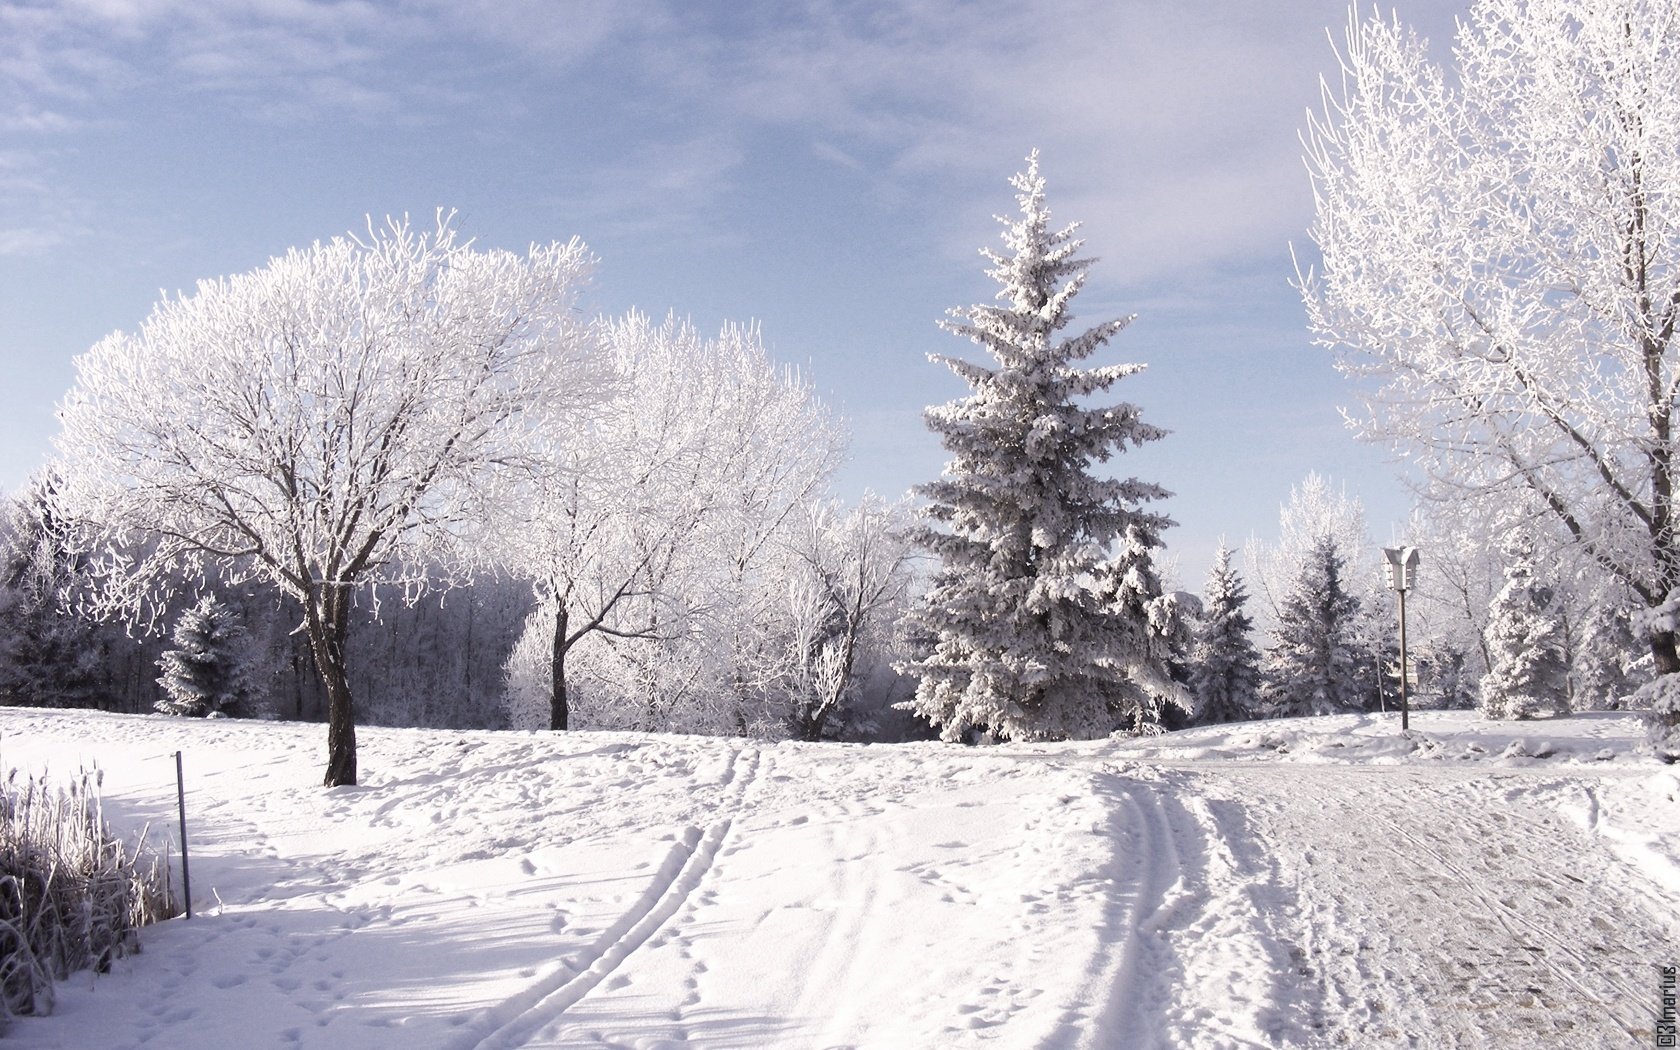 Winter HD Wallpapers Pictures Images Backgrounds Photos 1680x1050